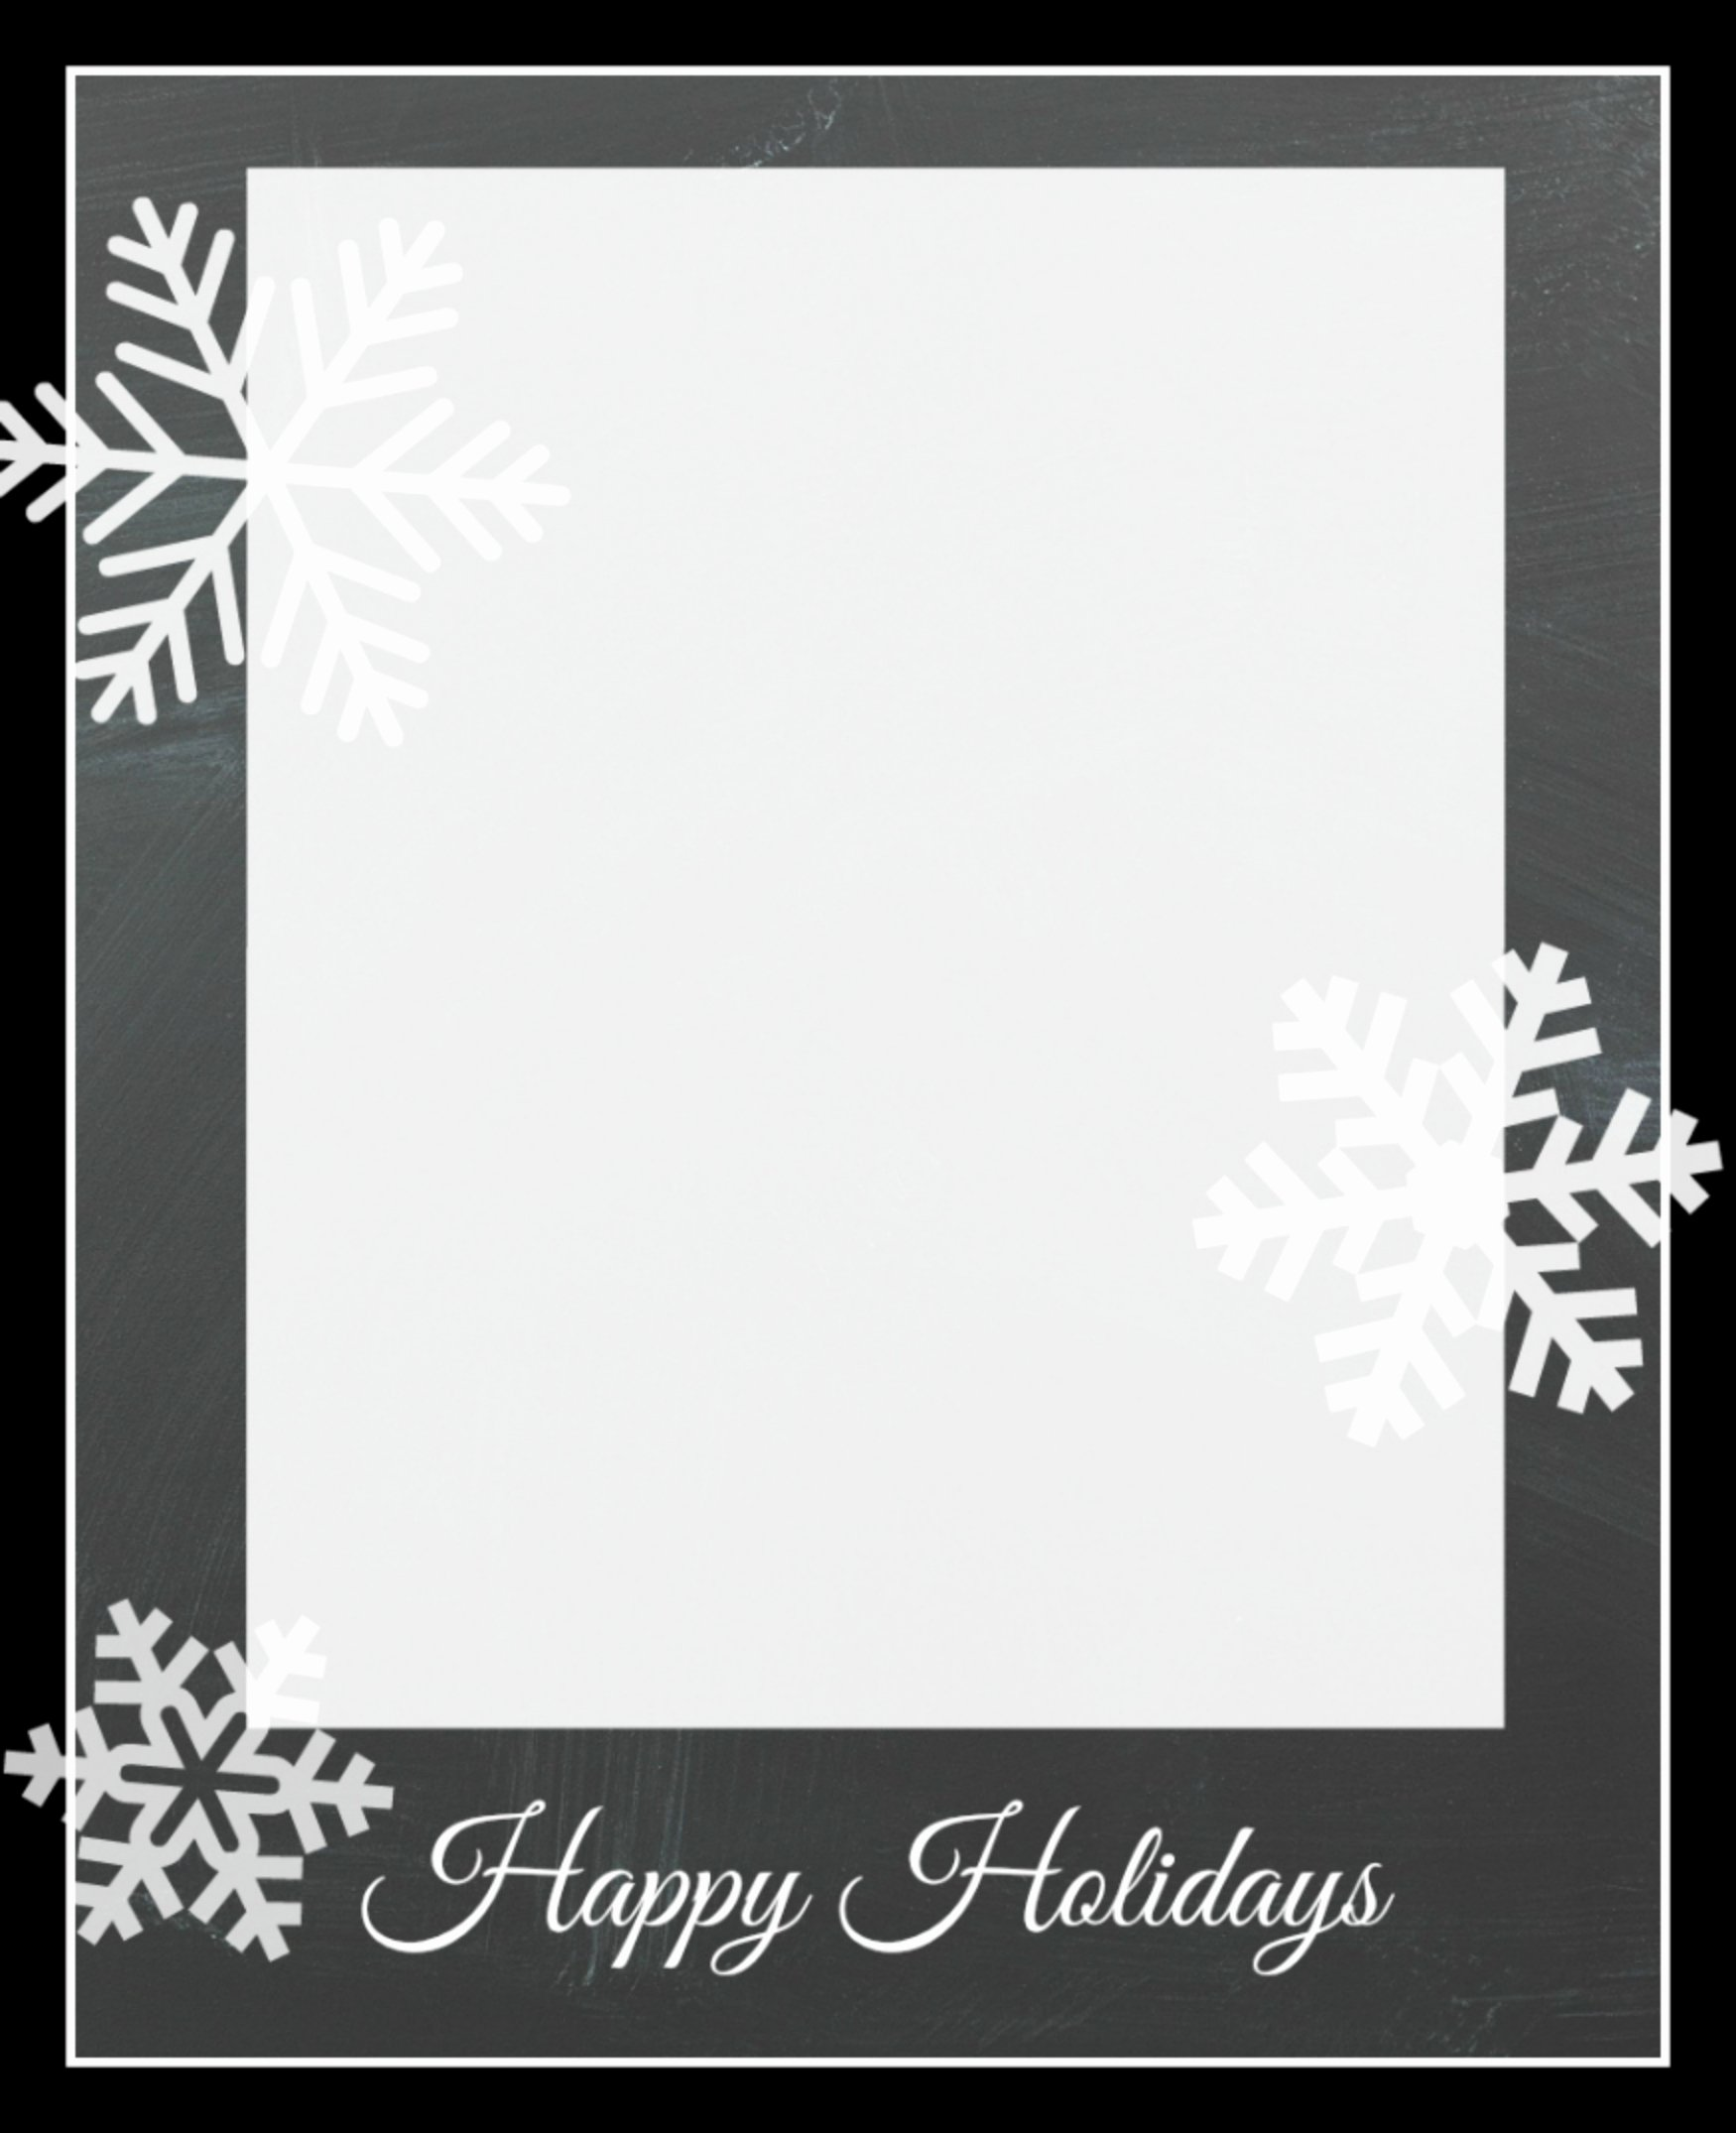 Free Greeting Card Template Word Elegant Free Christmas Card Templates Crazy Little Projects